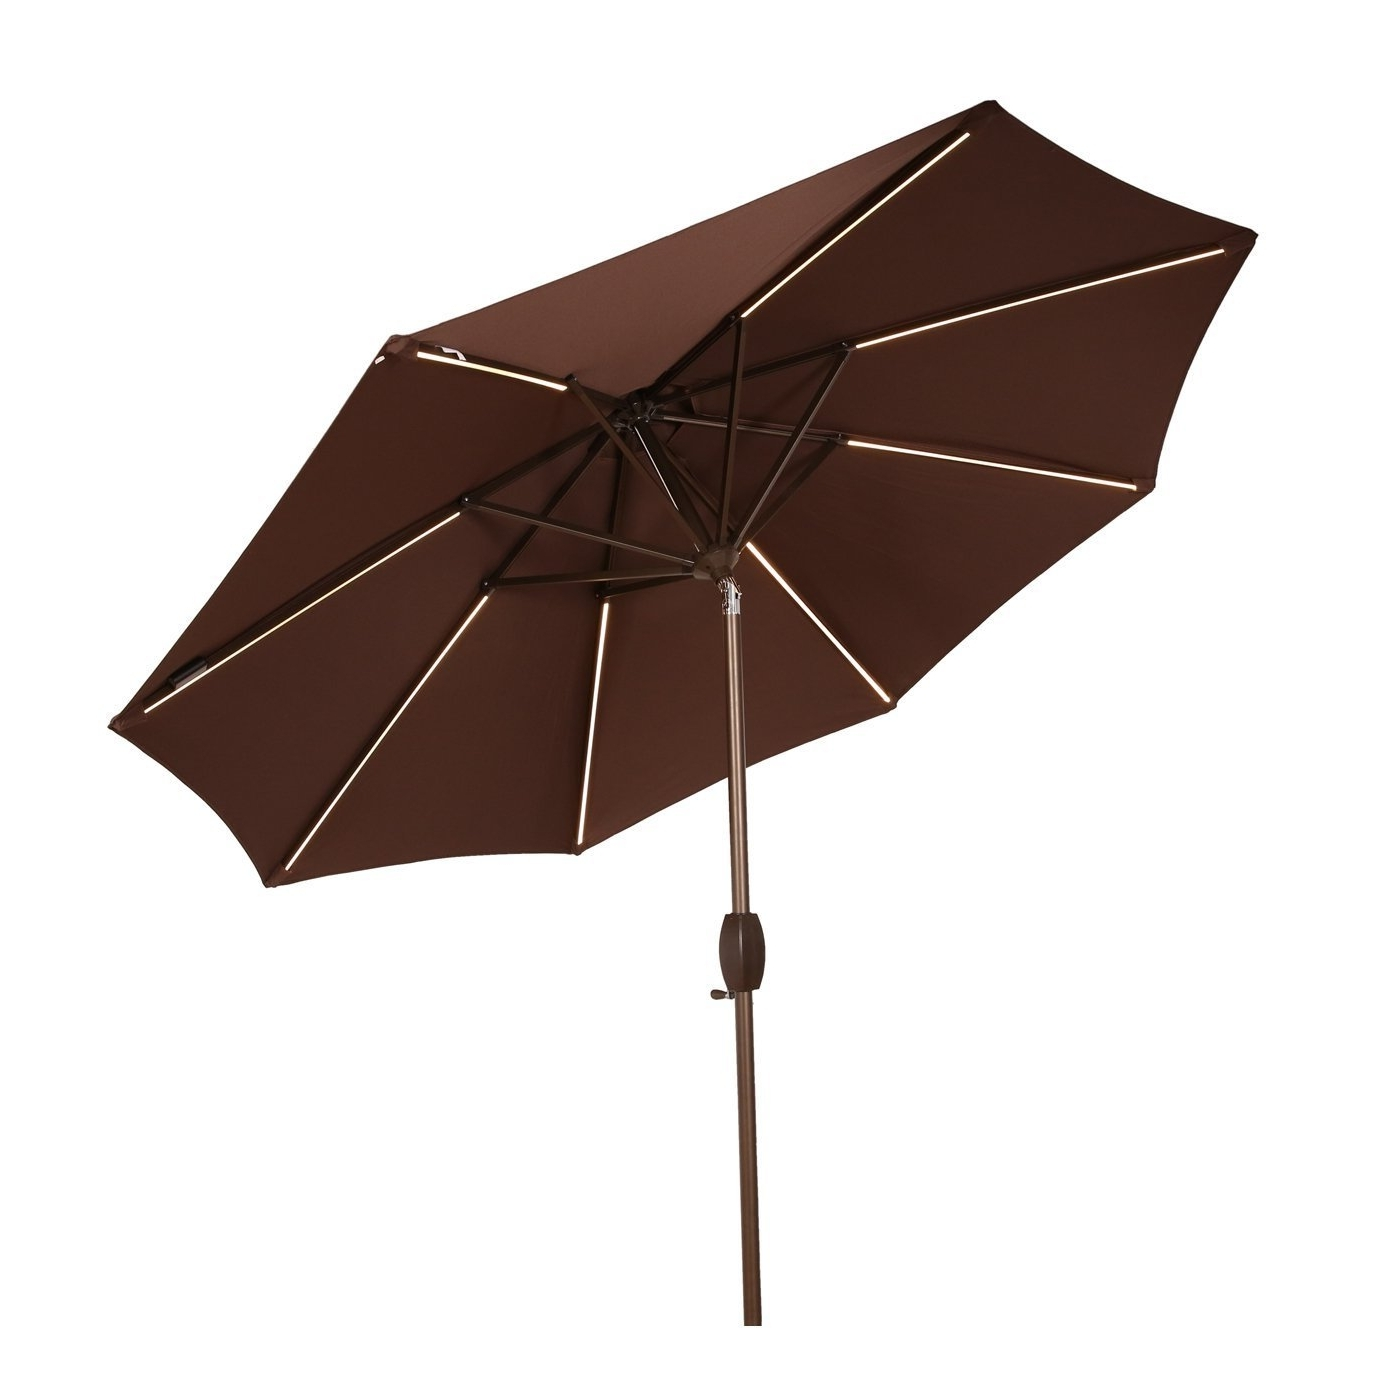 Famous Patio Umbrellas With Led Lights Pertaining To Buy Ulax Furniture 9 Ft Solar Powered Led Lights Patio Umbrella (View 19 of 20)